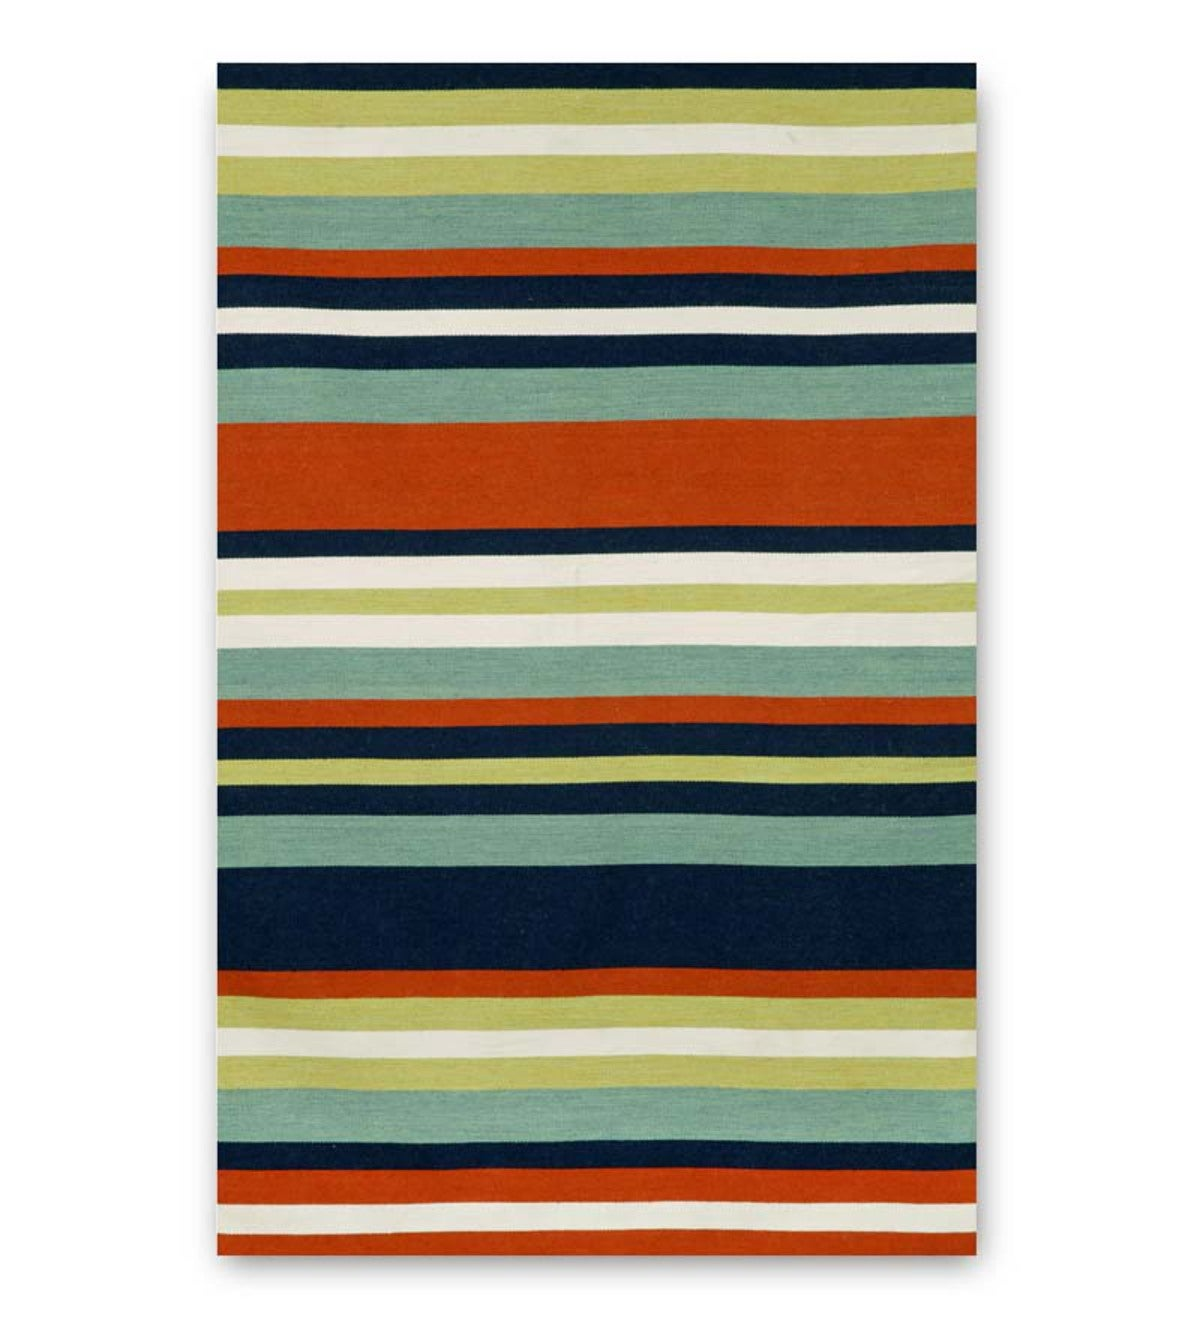 Sorrento Navy Tribeca Striped Indoor/Outdoor Rug - Navy